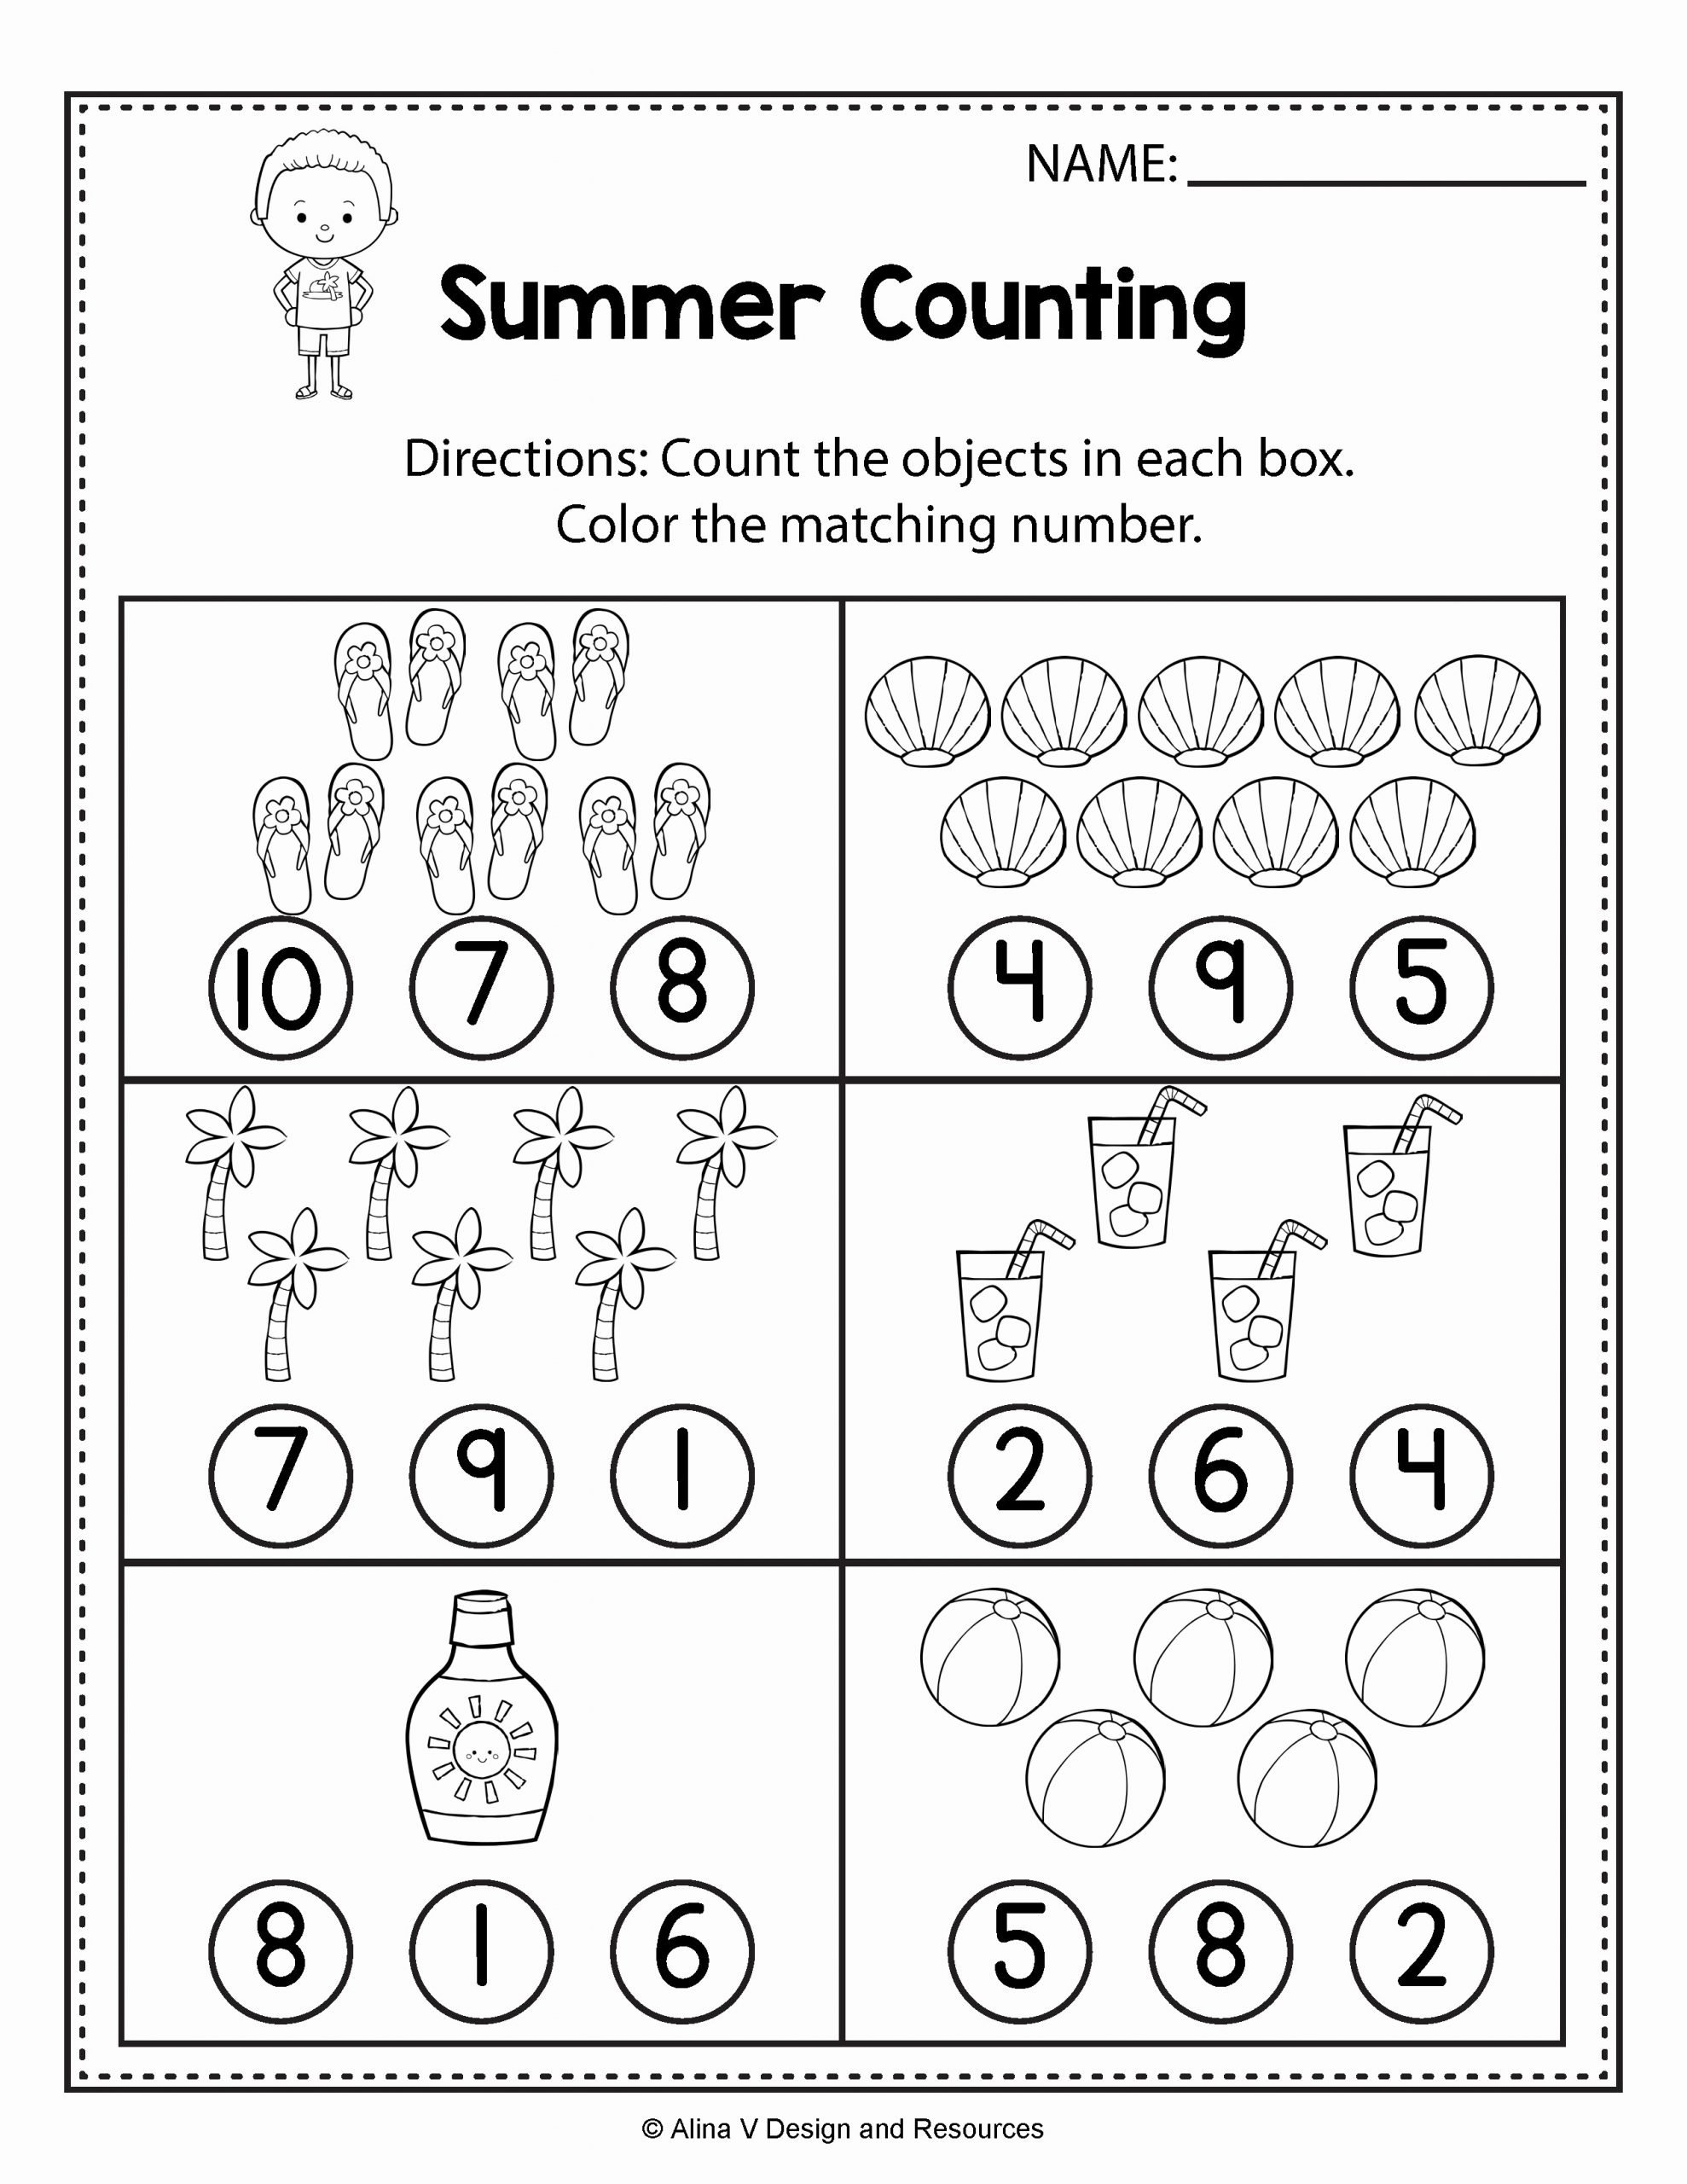 Worksheets for Preschoolers Counting Lovely Counting Worksheets Summer Math Worksheets and Activities